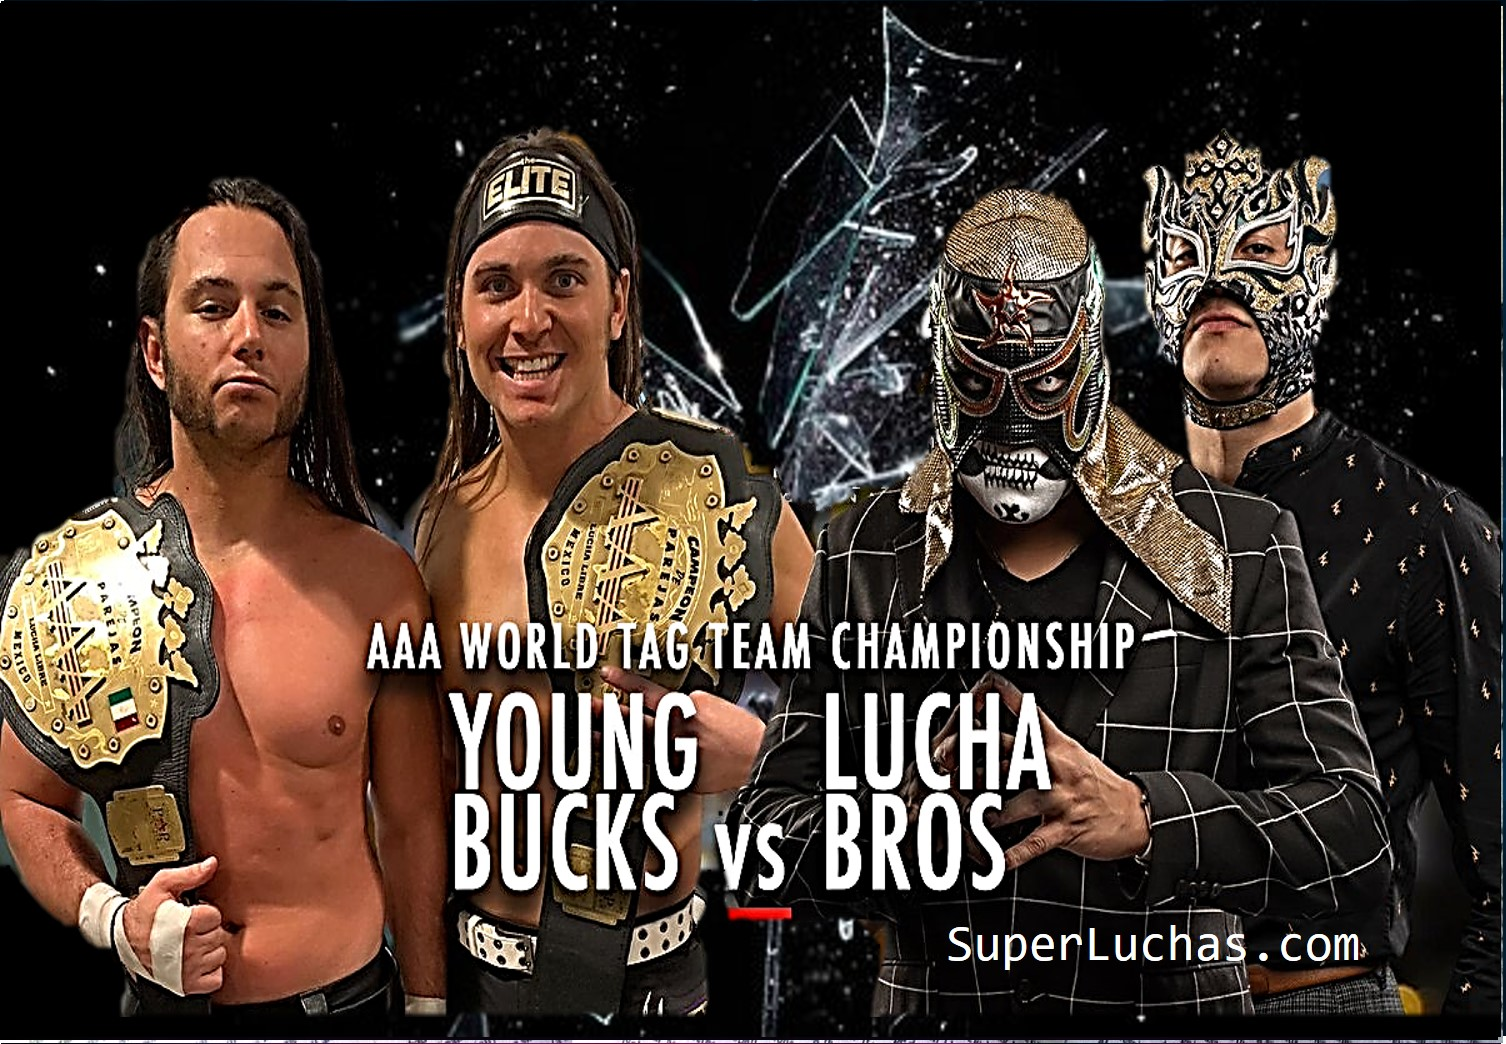 AAA: Young Bucks lanzan desafío a Lucha Brothers (video) 3